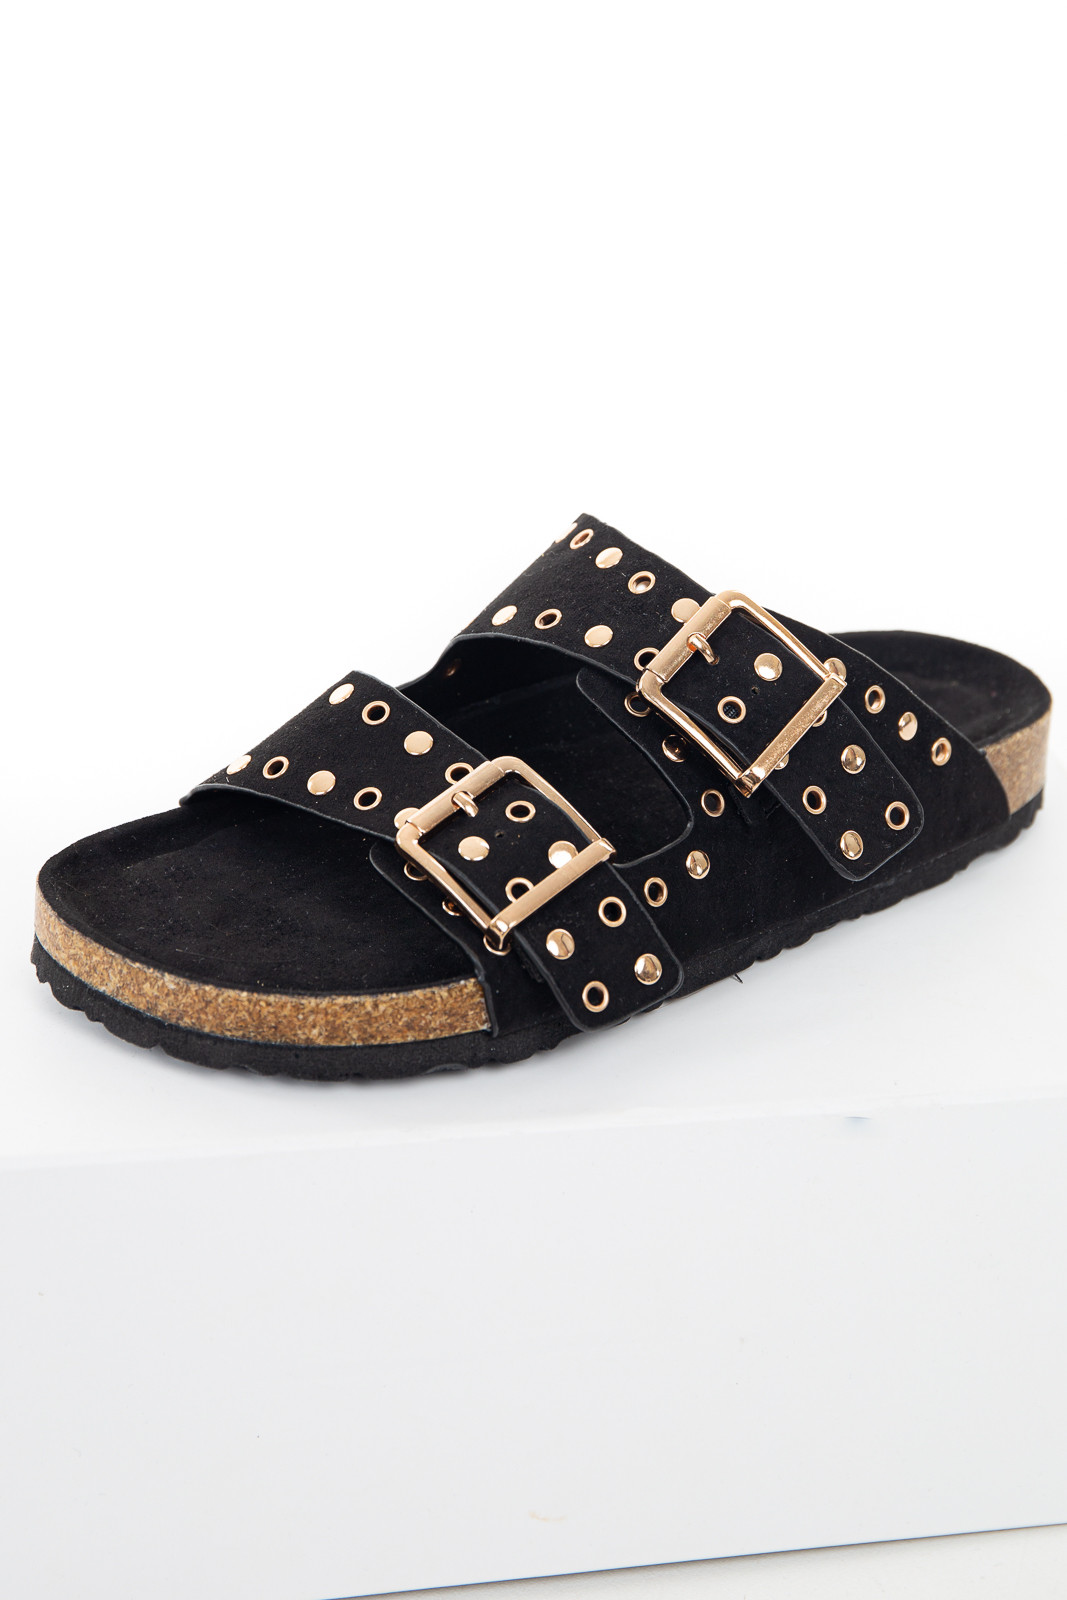 Black Sandals with Rose Gold Stud and Buckle Details